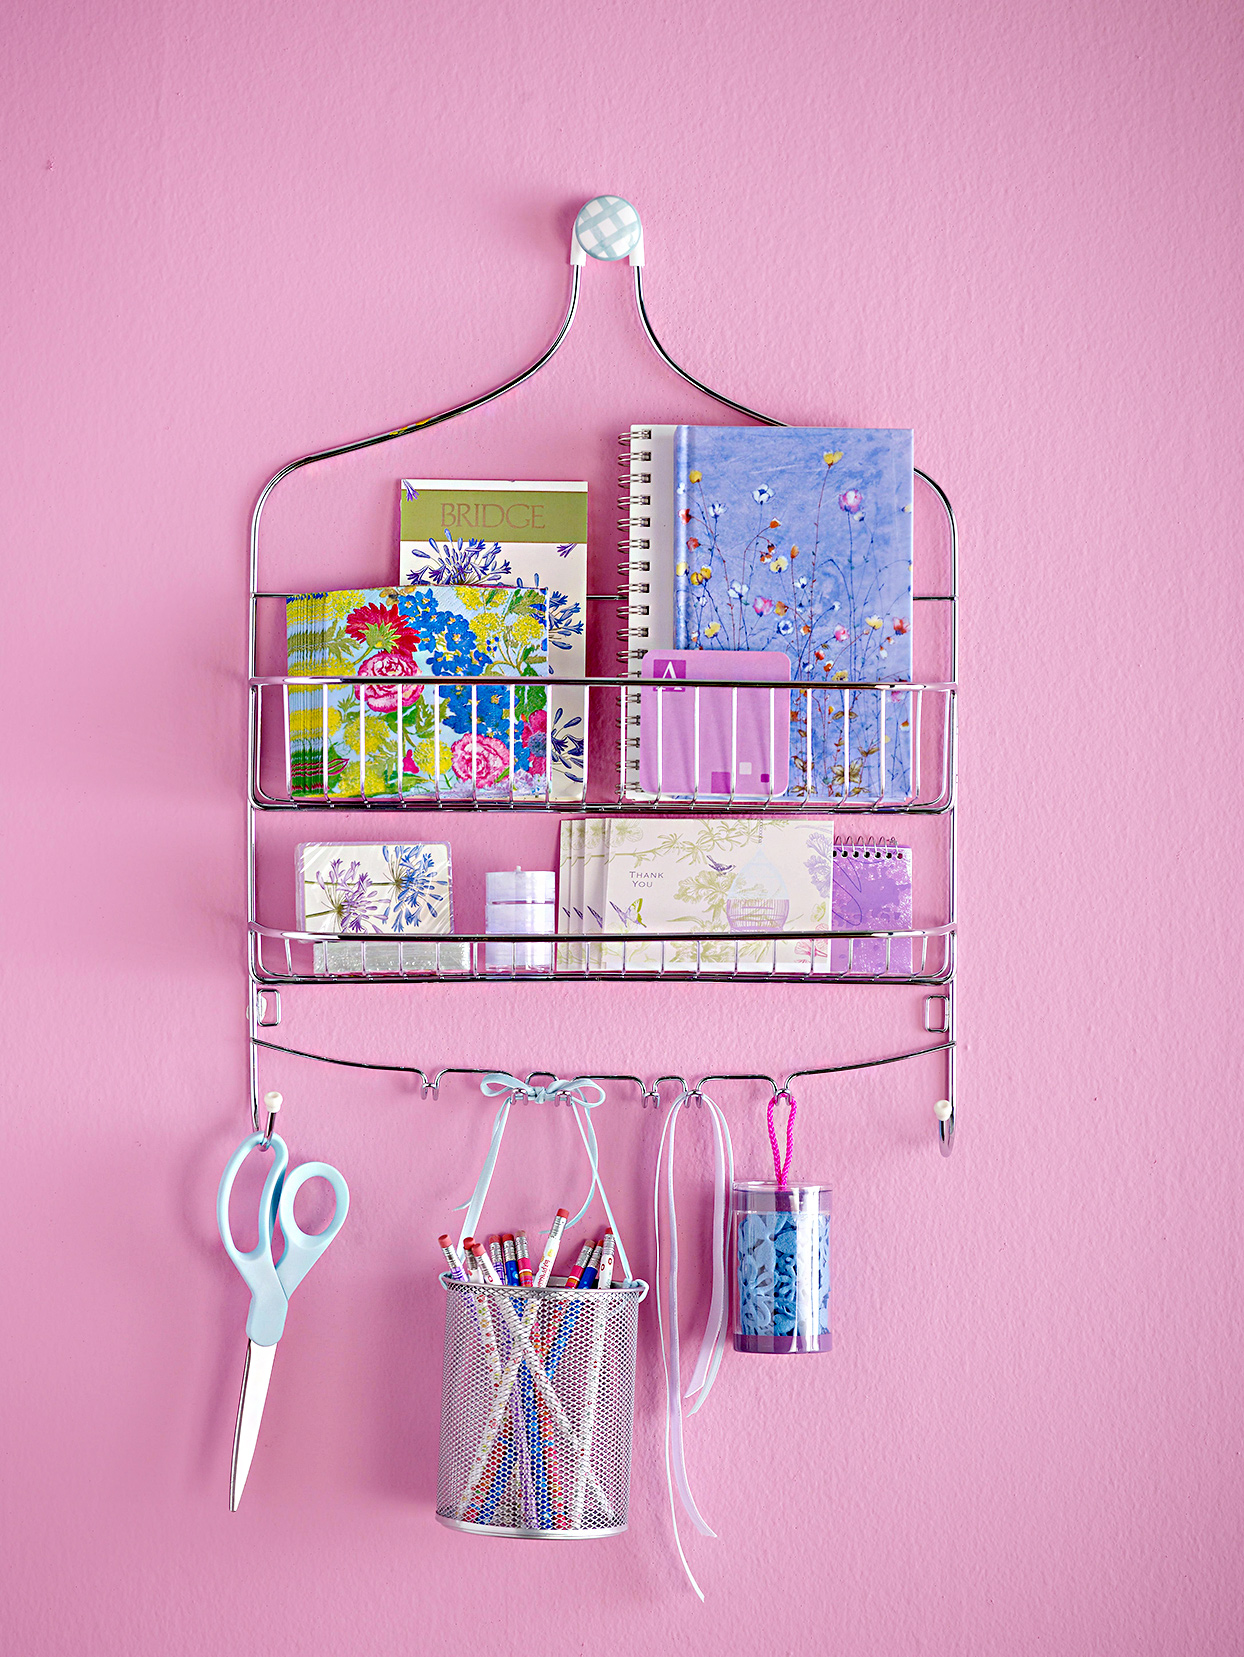 Hanging shelf with supplies on pink wall